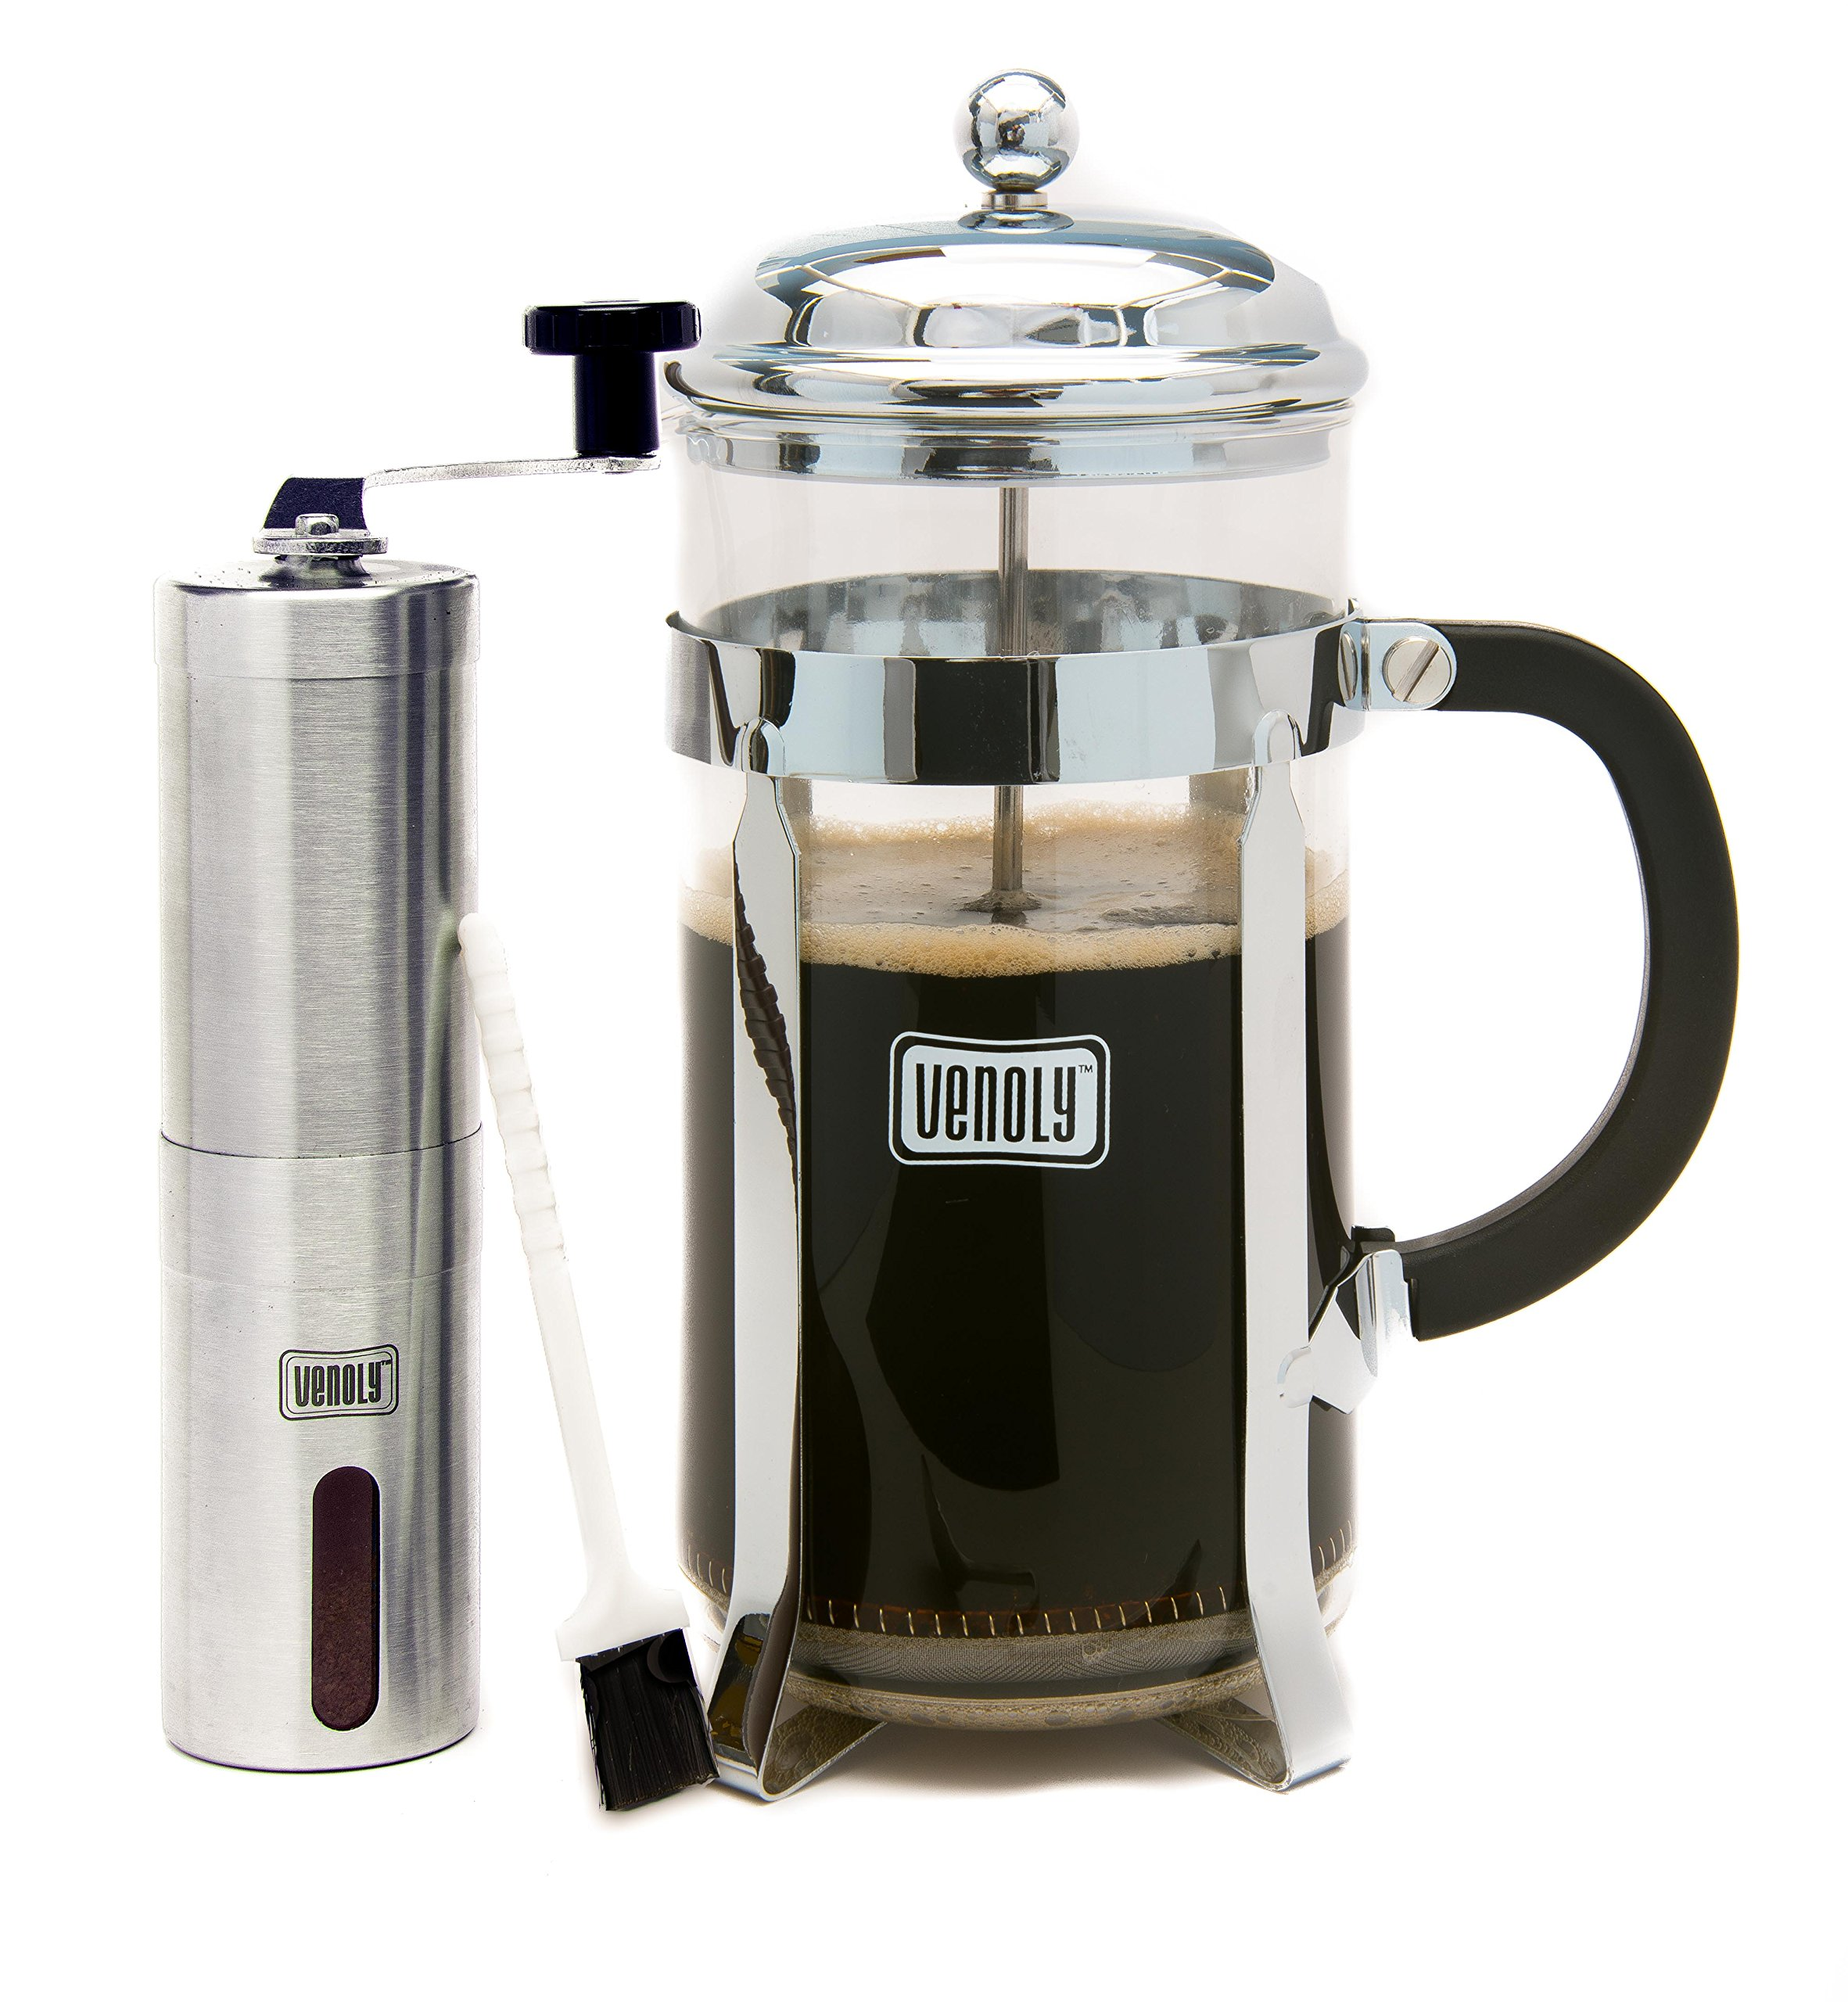 Venoly French Press Coffee Maker and Instant Coffee Grinder Set | Quality Food Grade Safe